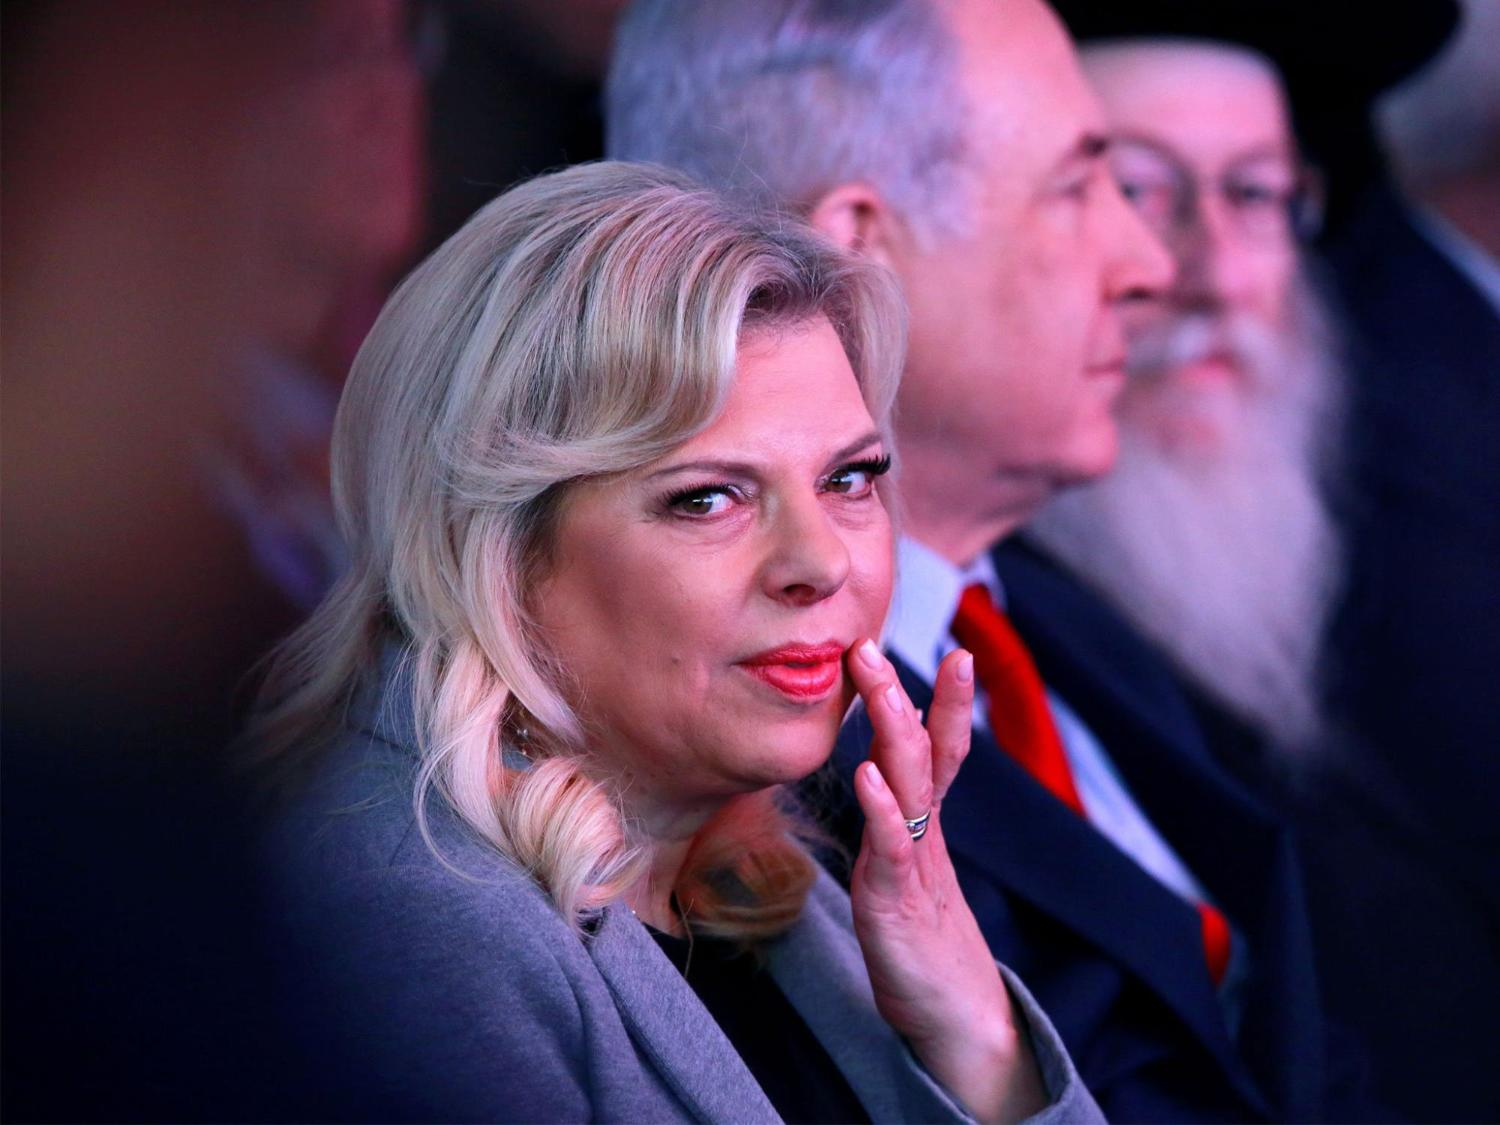 Sara Netanyahu, wife of Israeli PM, charged with fraud https://t.co/mBWvE02owK https://t.co/H4V6haIpiH